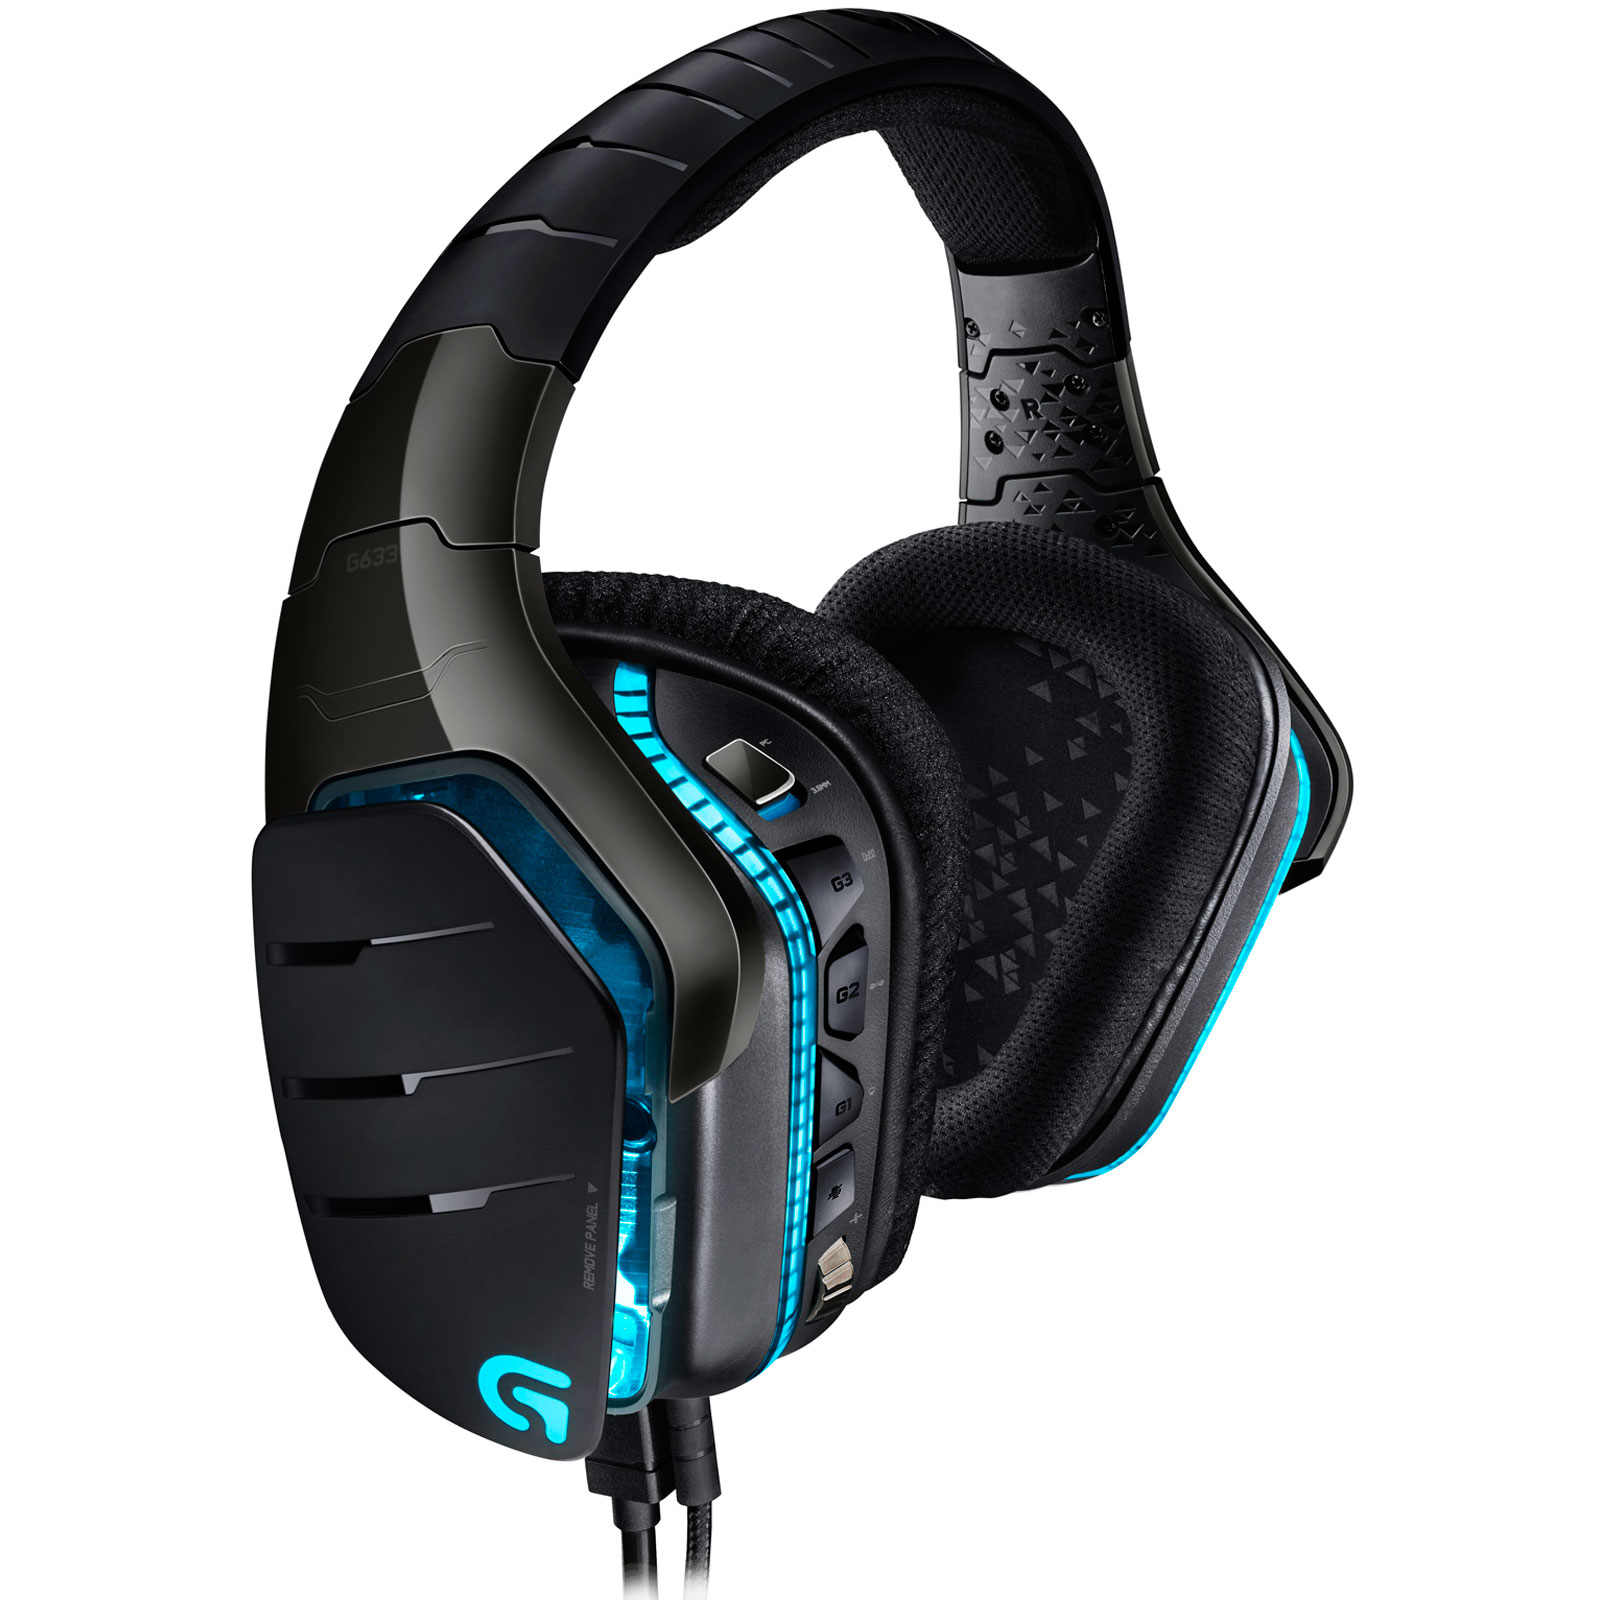 Micro-casque Logitech G633 Artemis Spectrum RGB 7.1 Surround Gaming Headset Casque-micro 7.1 pour gamer (compatible PC/ PlayStation 4/ Xbox One)